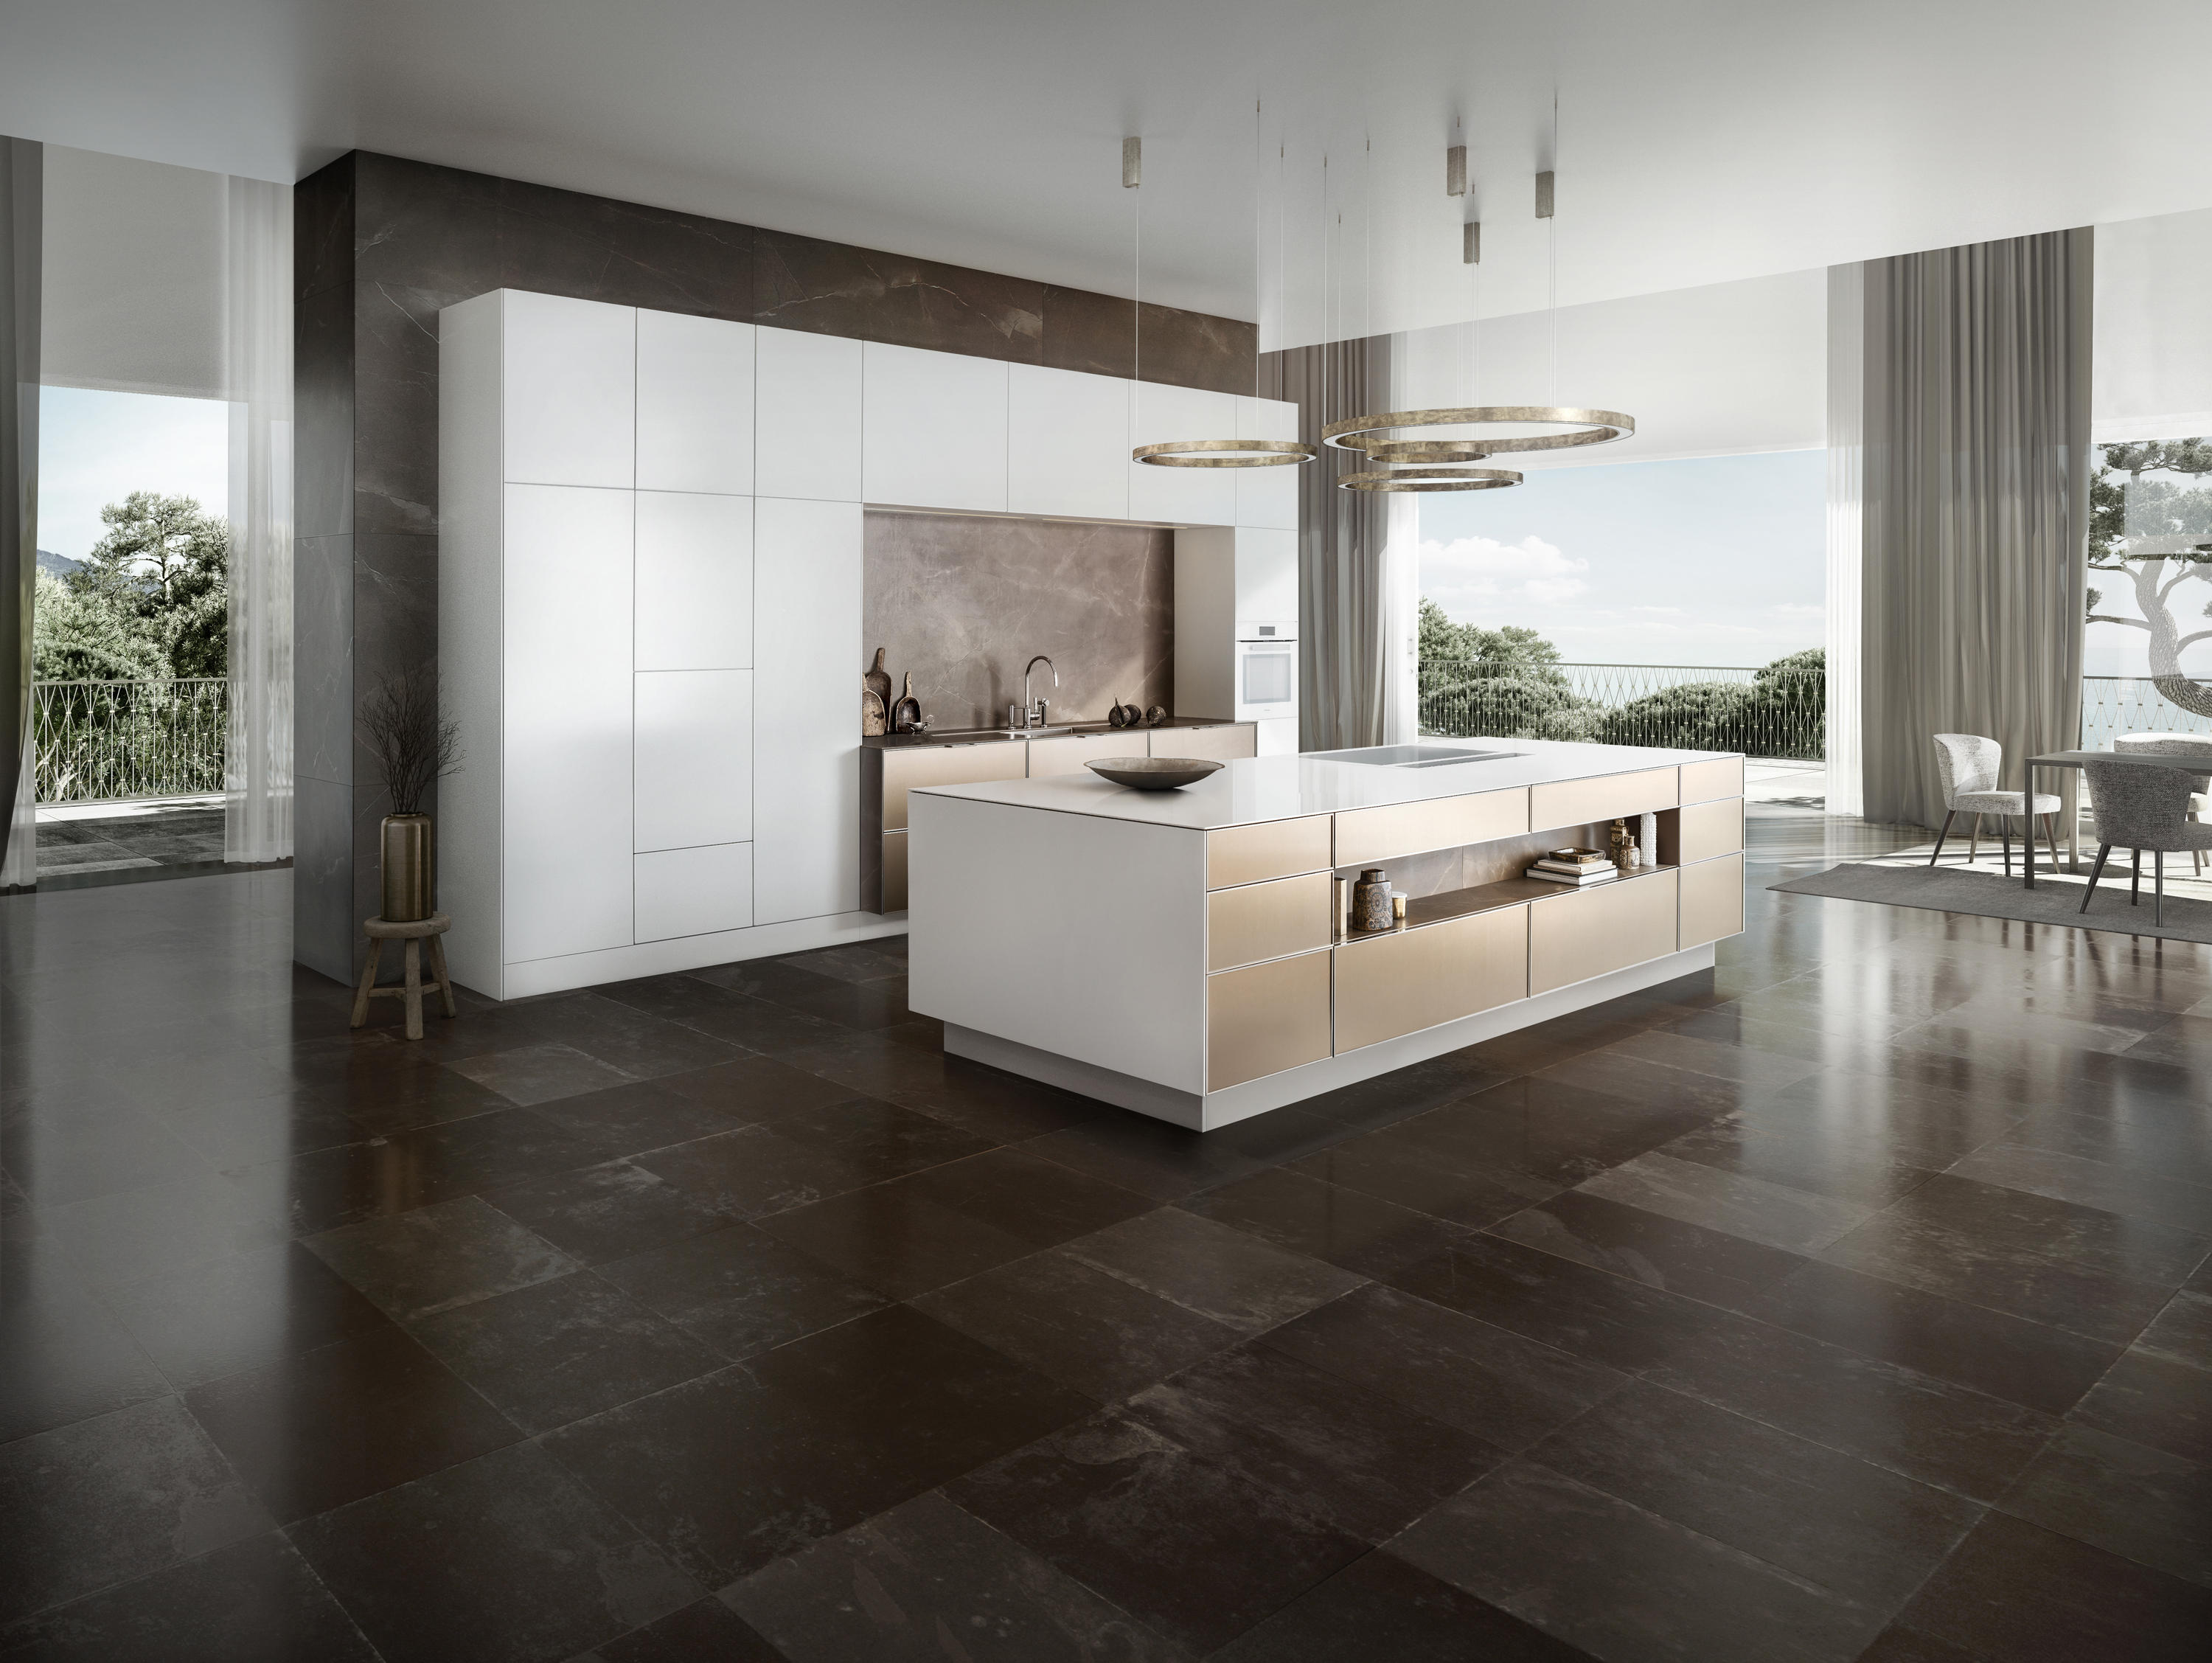 siematic se 3003 r fitted kitchens from siematic. Black Bedroom Furniture Sets. Home Design Ideas